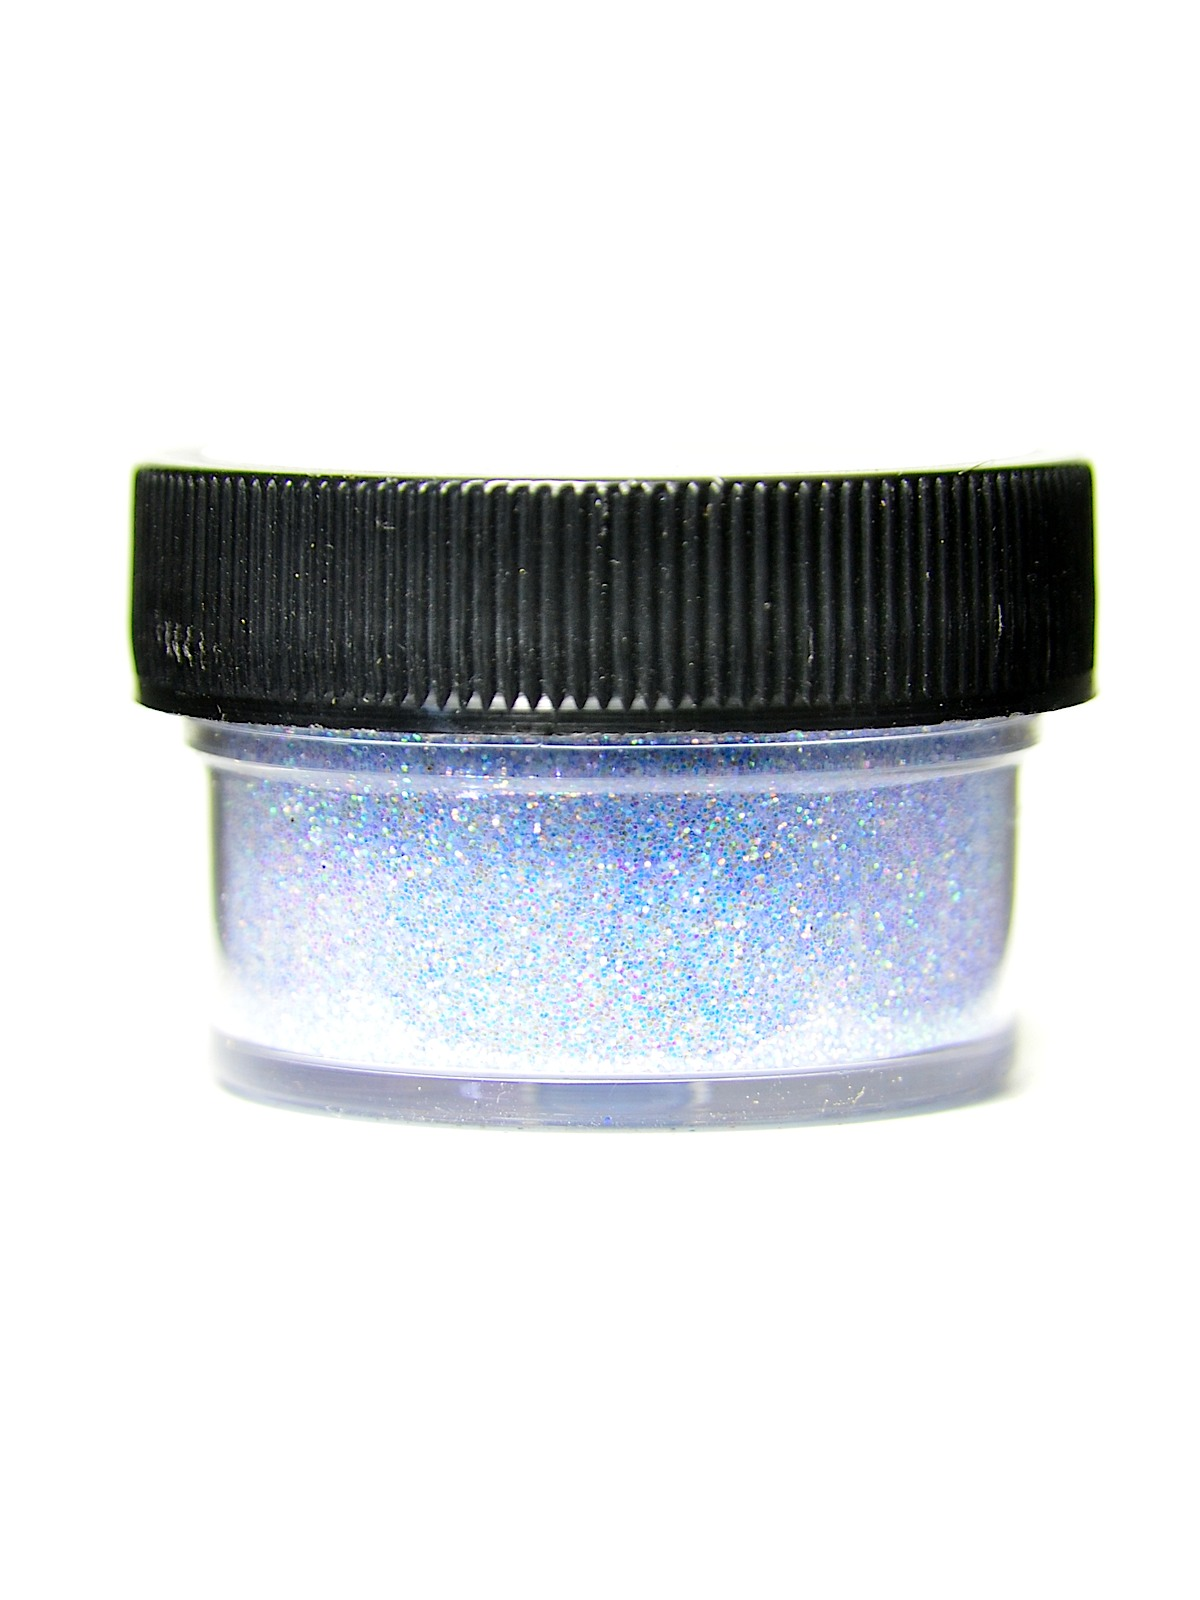 Ultrafine Transparent Glitter Forget Me Not 1 2 Oz. Jar